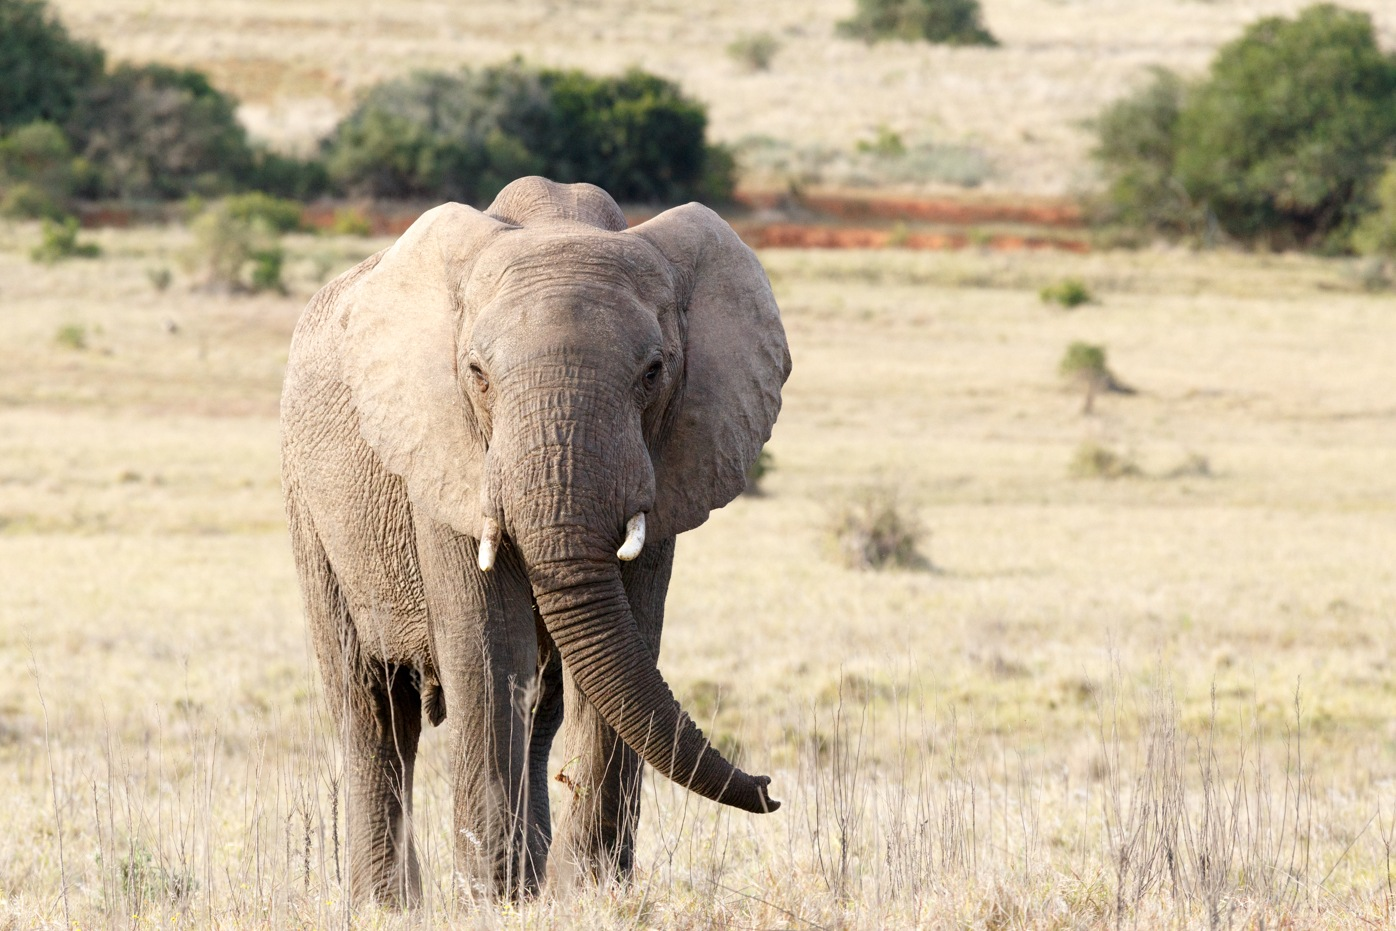 Elephant standing with his trunk pointing to the side by Charissa de Scande Lotter